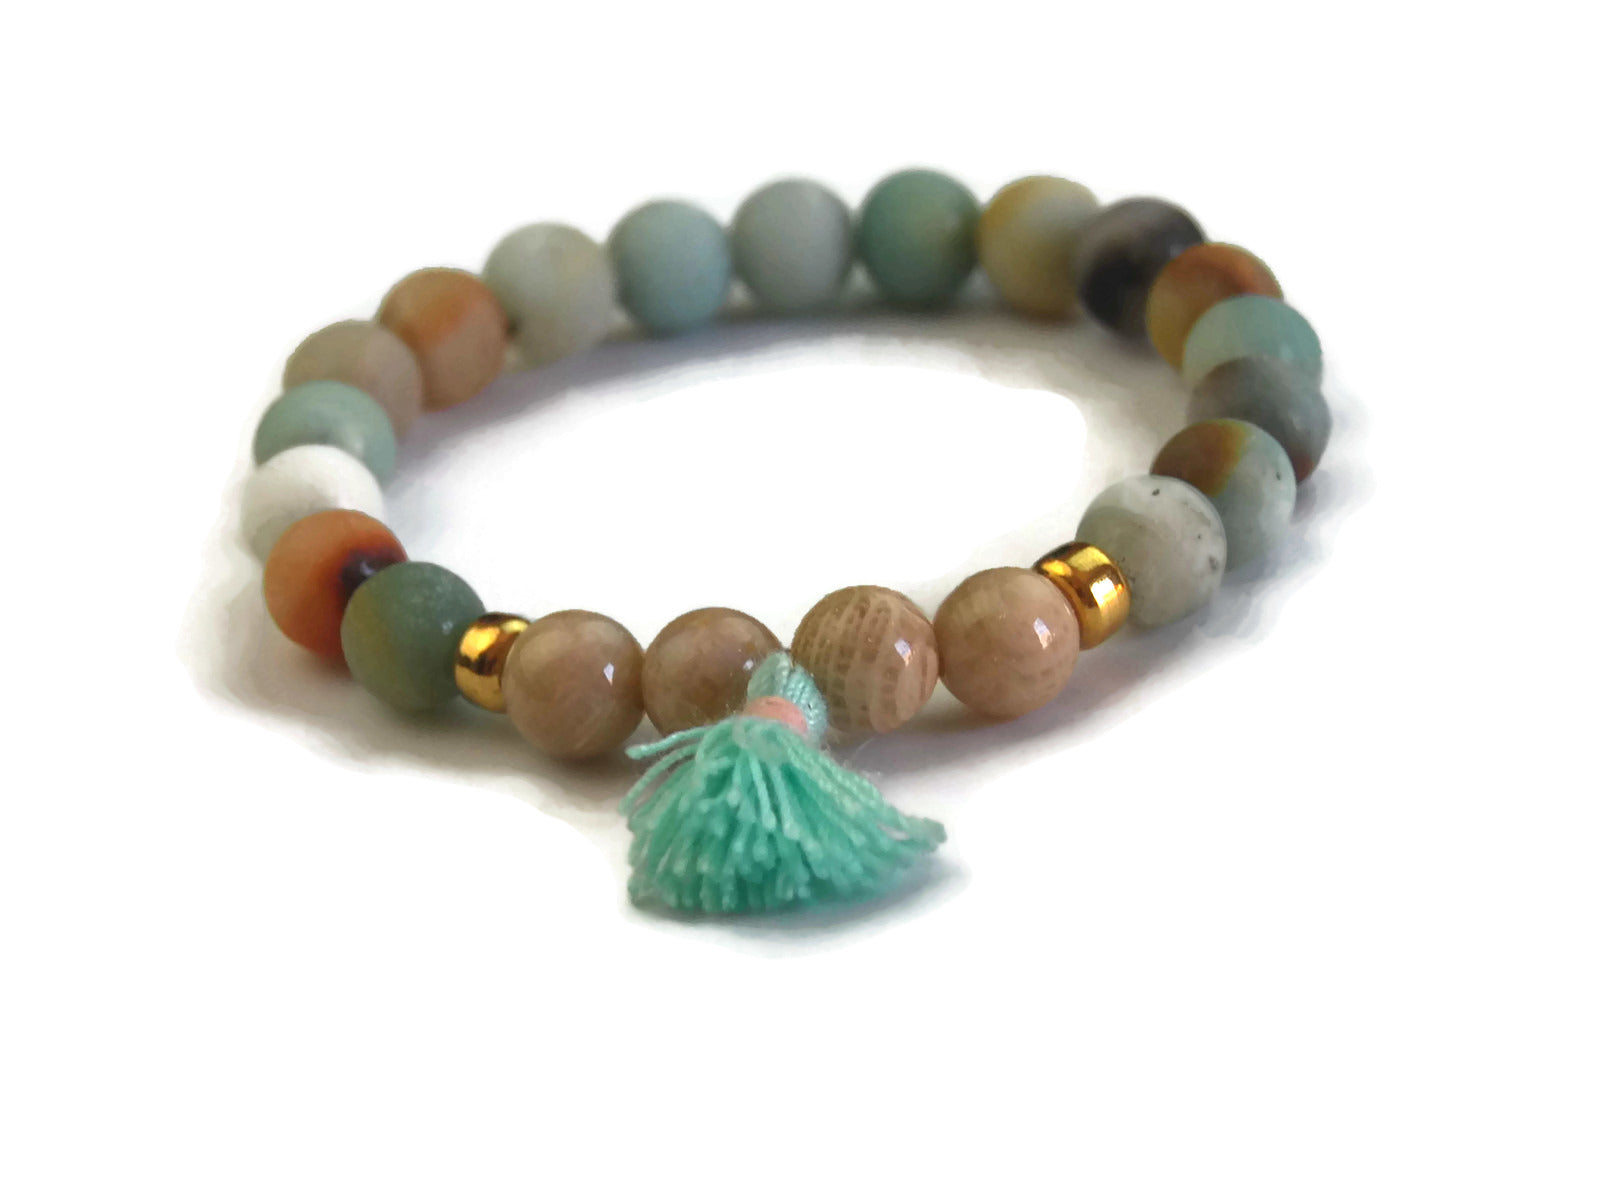 Beach Collection 8mm Amazonite, Crinoid Fossil with 24k Gold Spacers and Light Green Tassel Stretch Bracelet Wrist Mala